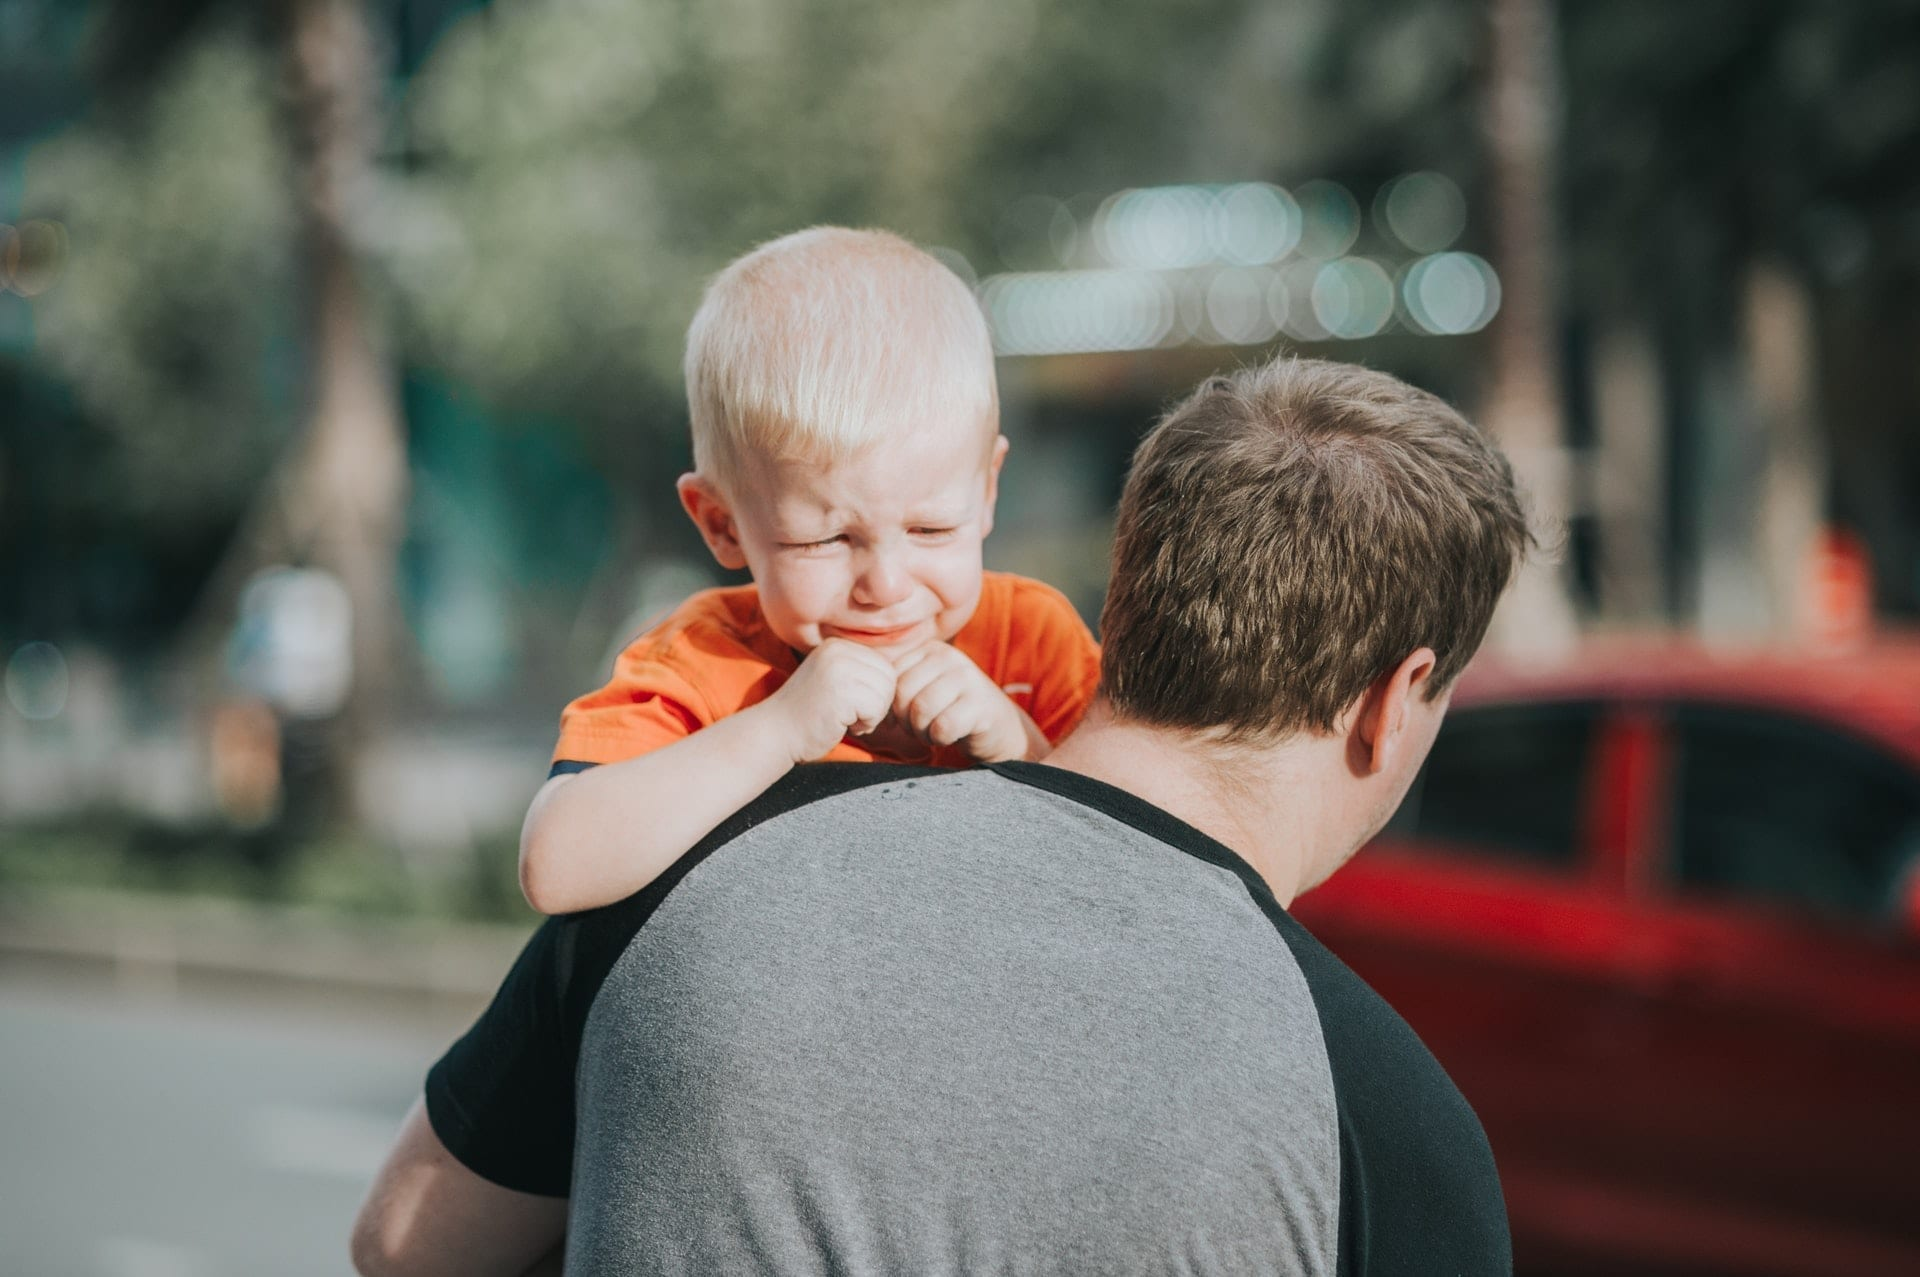 You could lose custody of your children if you go to prison, but it's not likely.